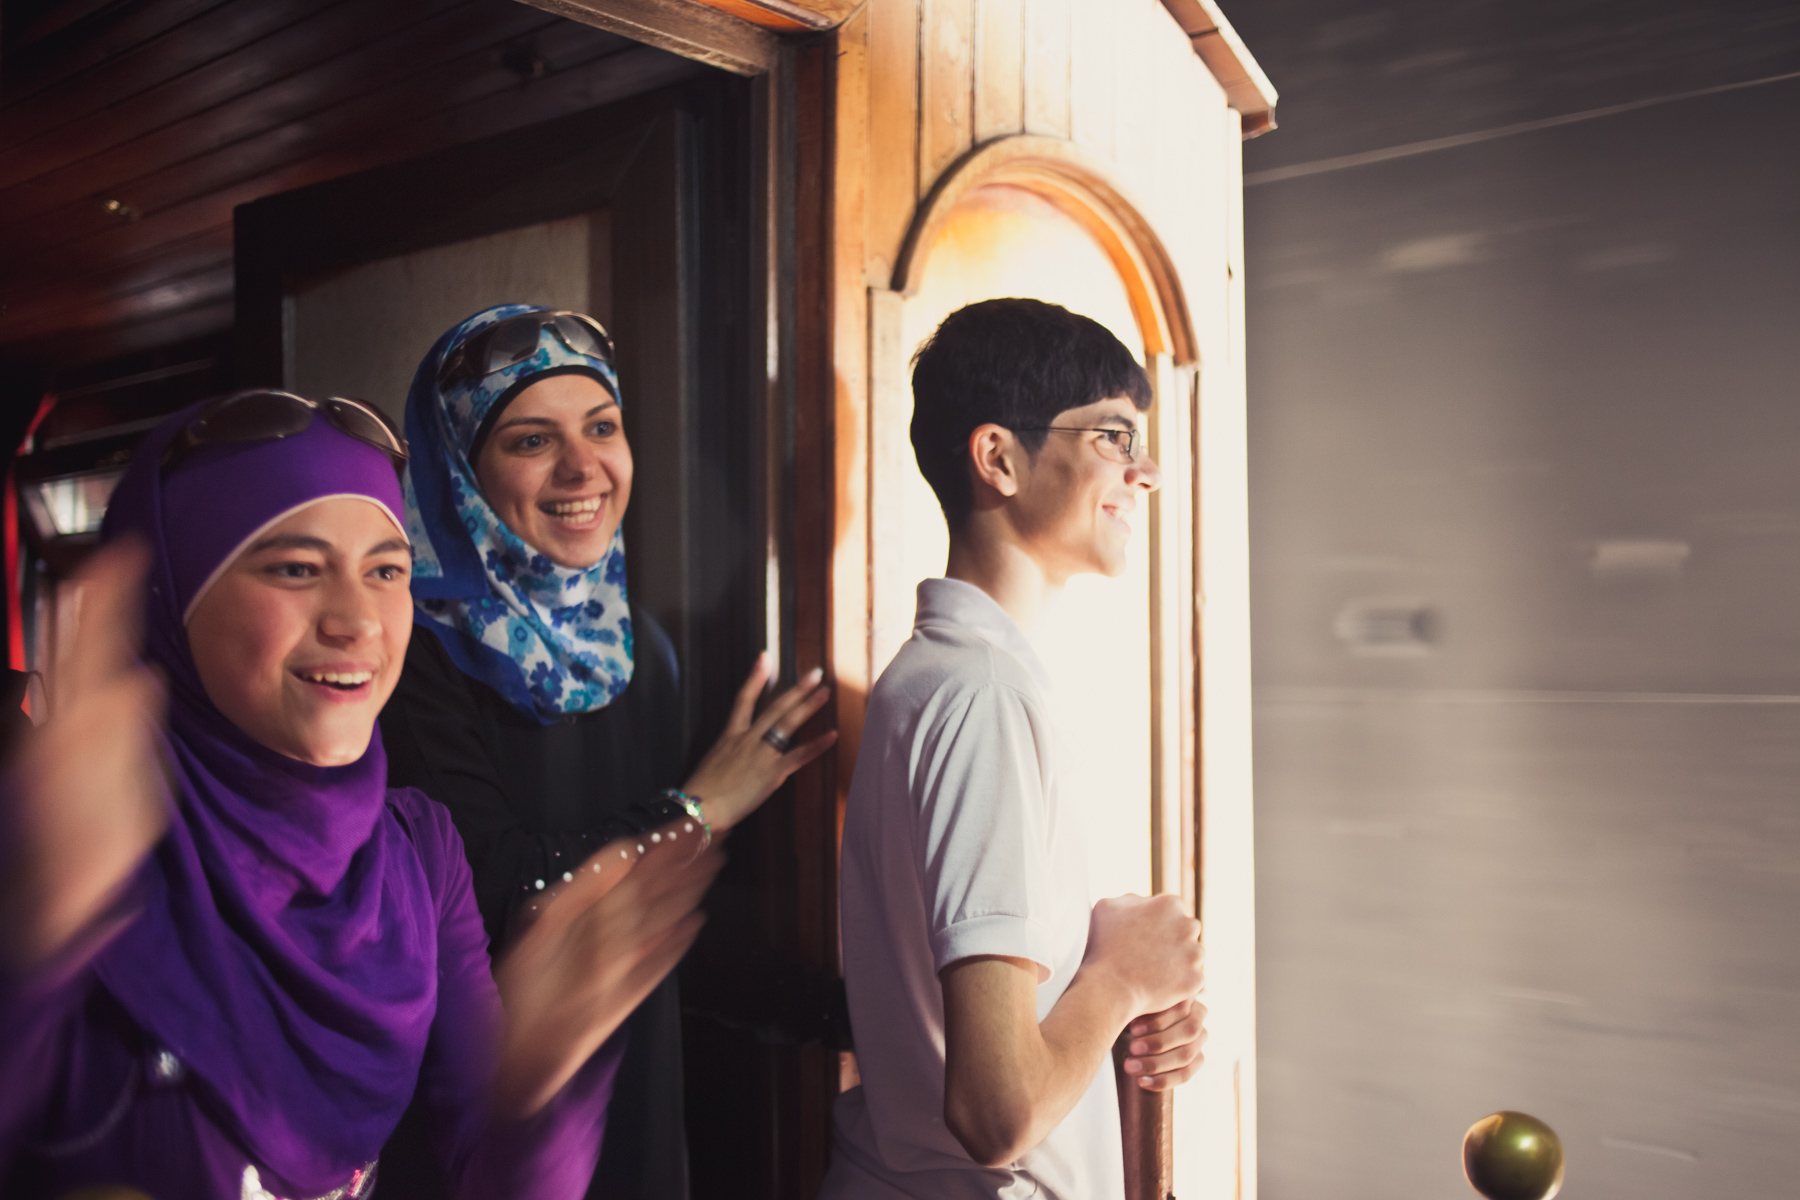 A family enjoys a rare ride on the old Hejaz Railway to Giza station, south of Amman, on May 6, 2011. The historic railway, built during the Ottoman Empire, once connected pilgrims traveling from Istanbul to Mecca in present-day Saudi Arabia.